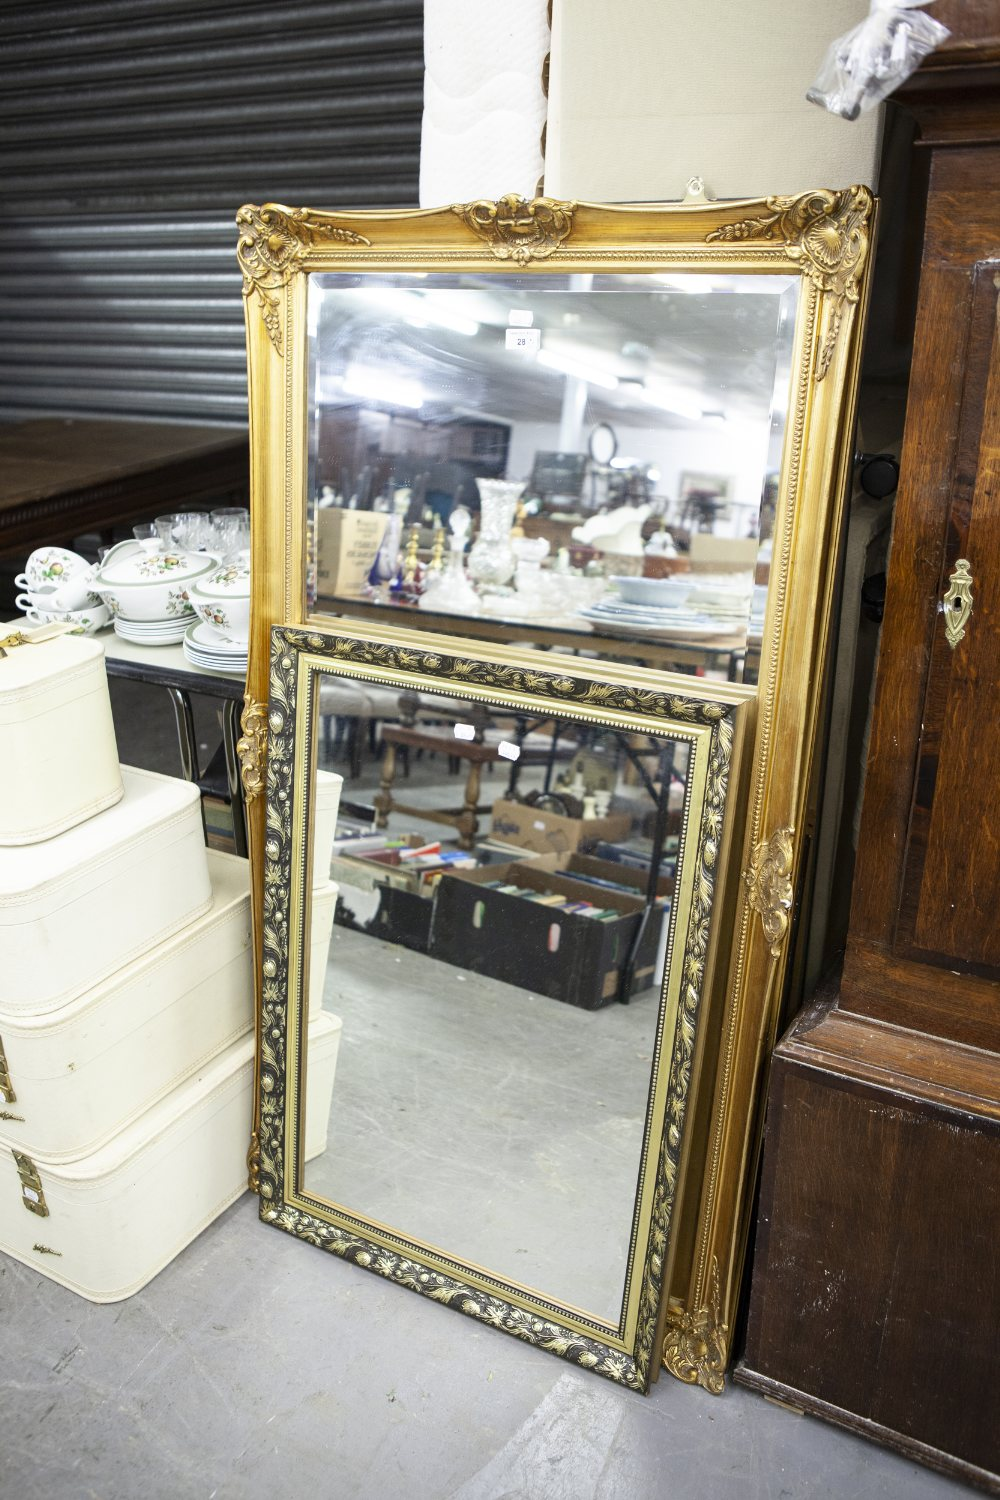 Lot 28 - A LARGE GILT FRAMED WALL MIRROR AND A SMALLER GILT FRAMED MIRROR (2)